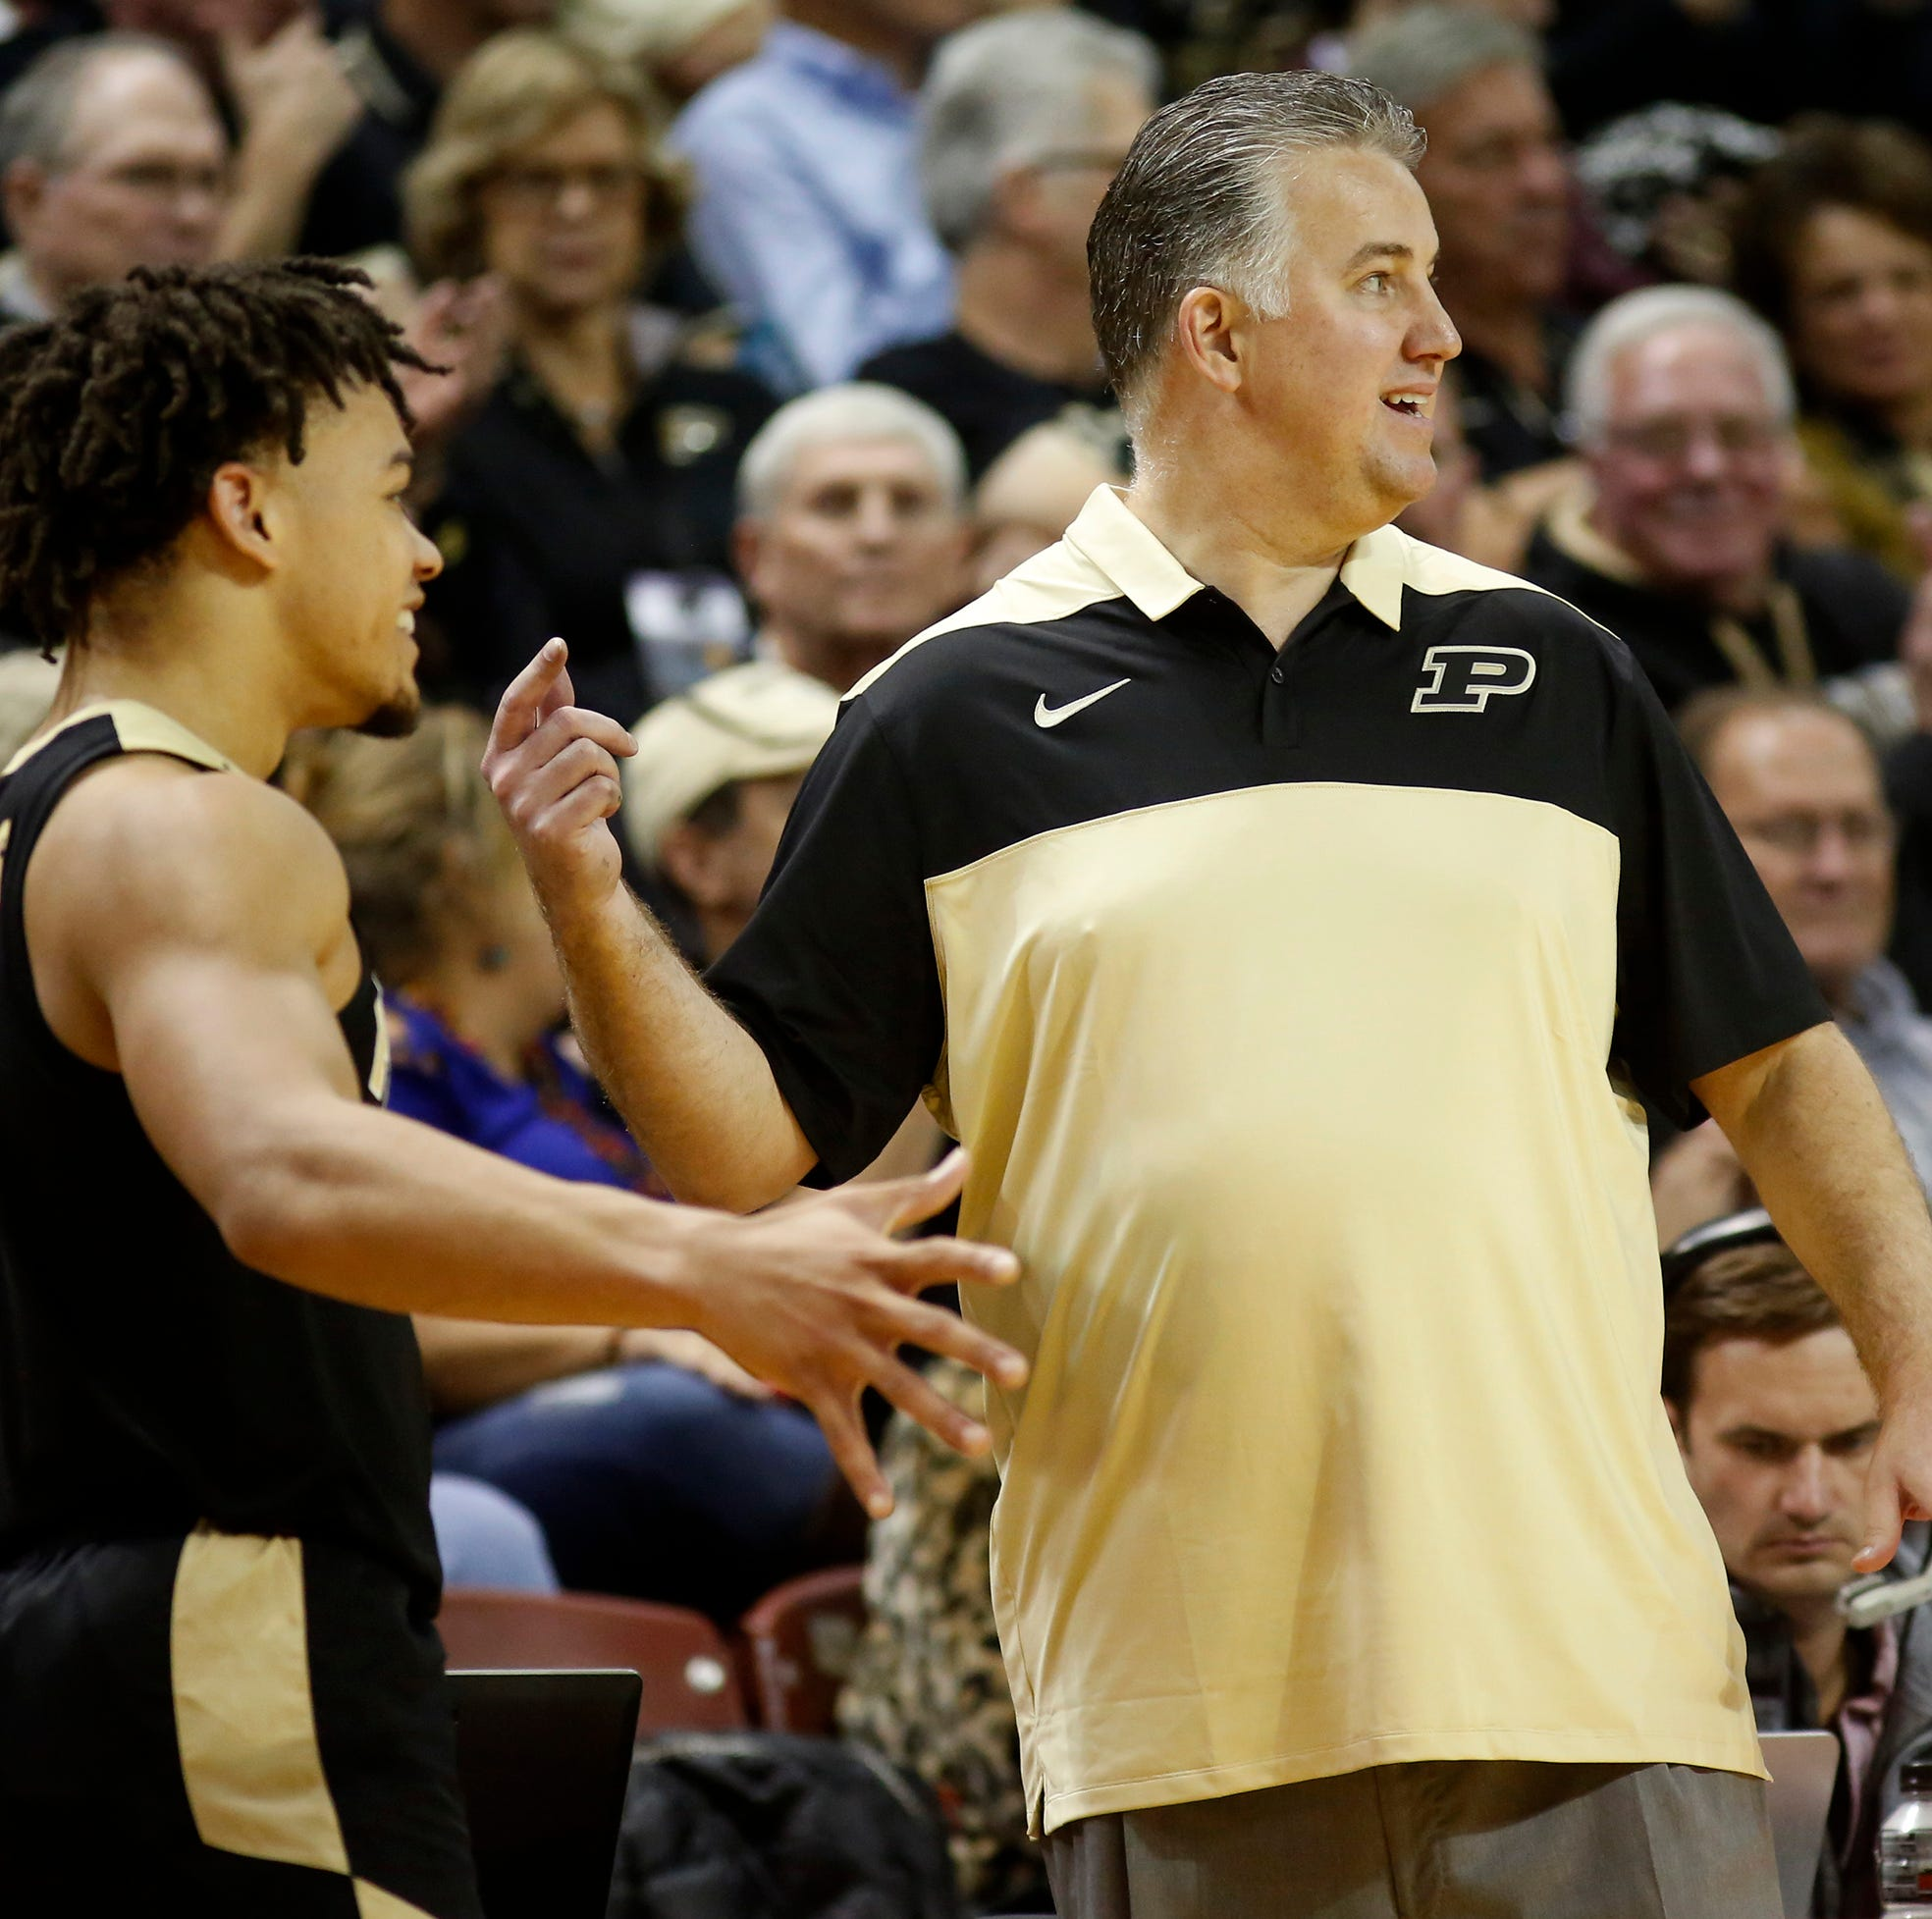 Purdue basketball's Matt Painter and Carsen Edwards lead Associated Press All-Big Ten team